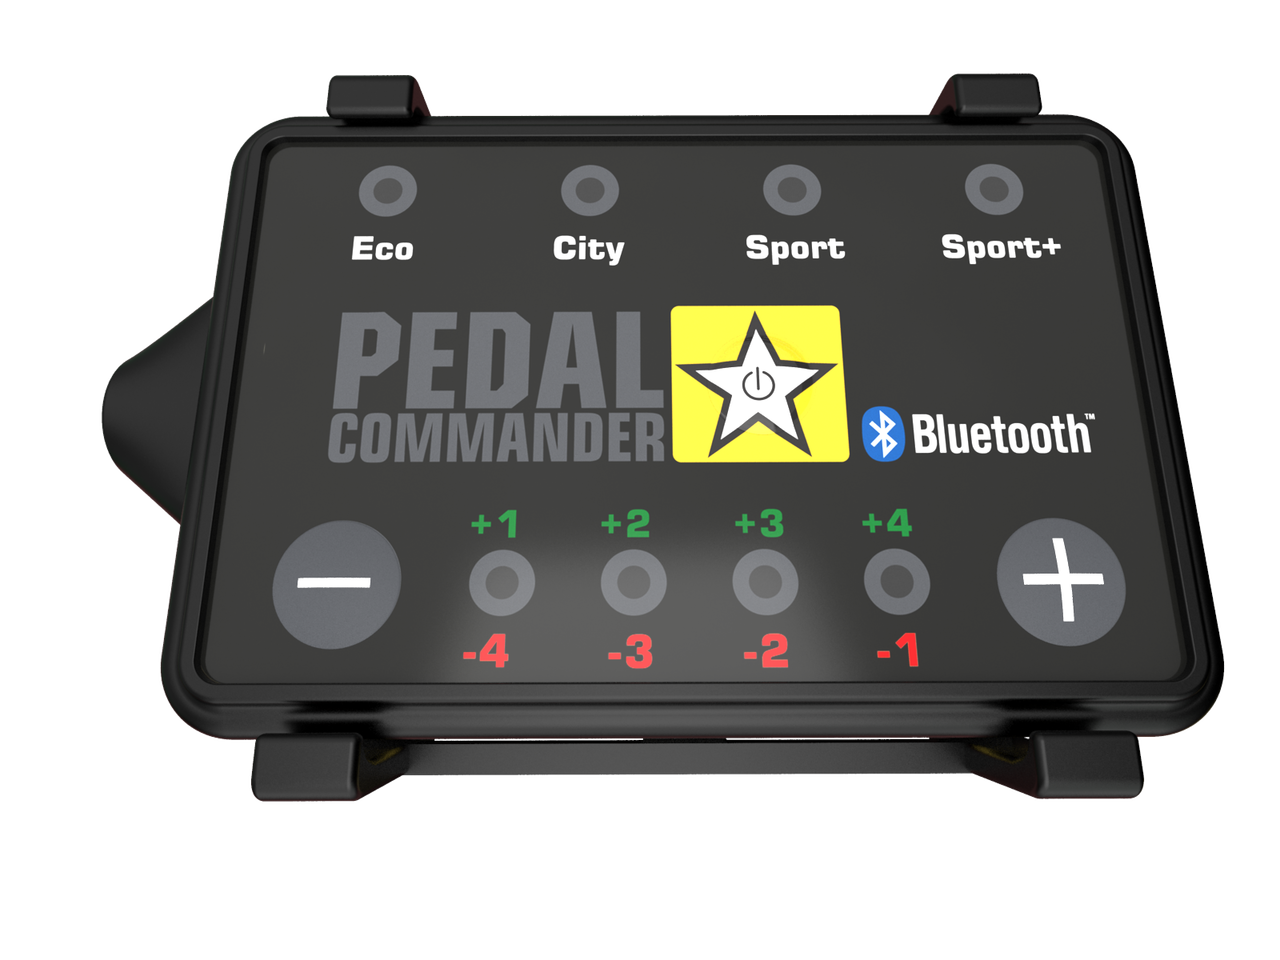 Pedal Commander PC31 Bluetooth For 2007-2018 Dodge Ram 1500 Trucks